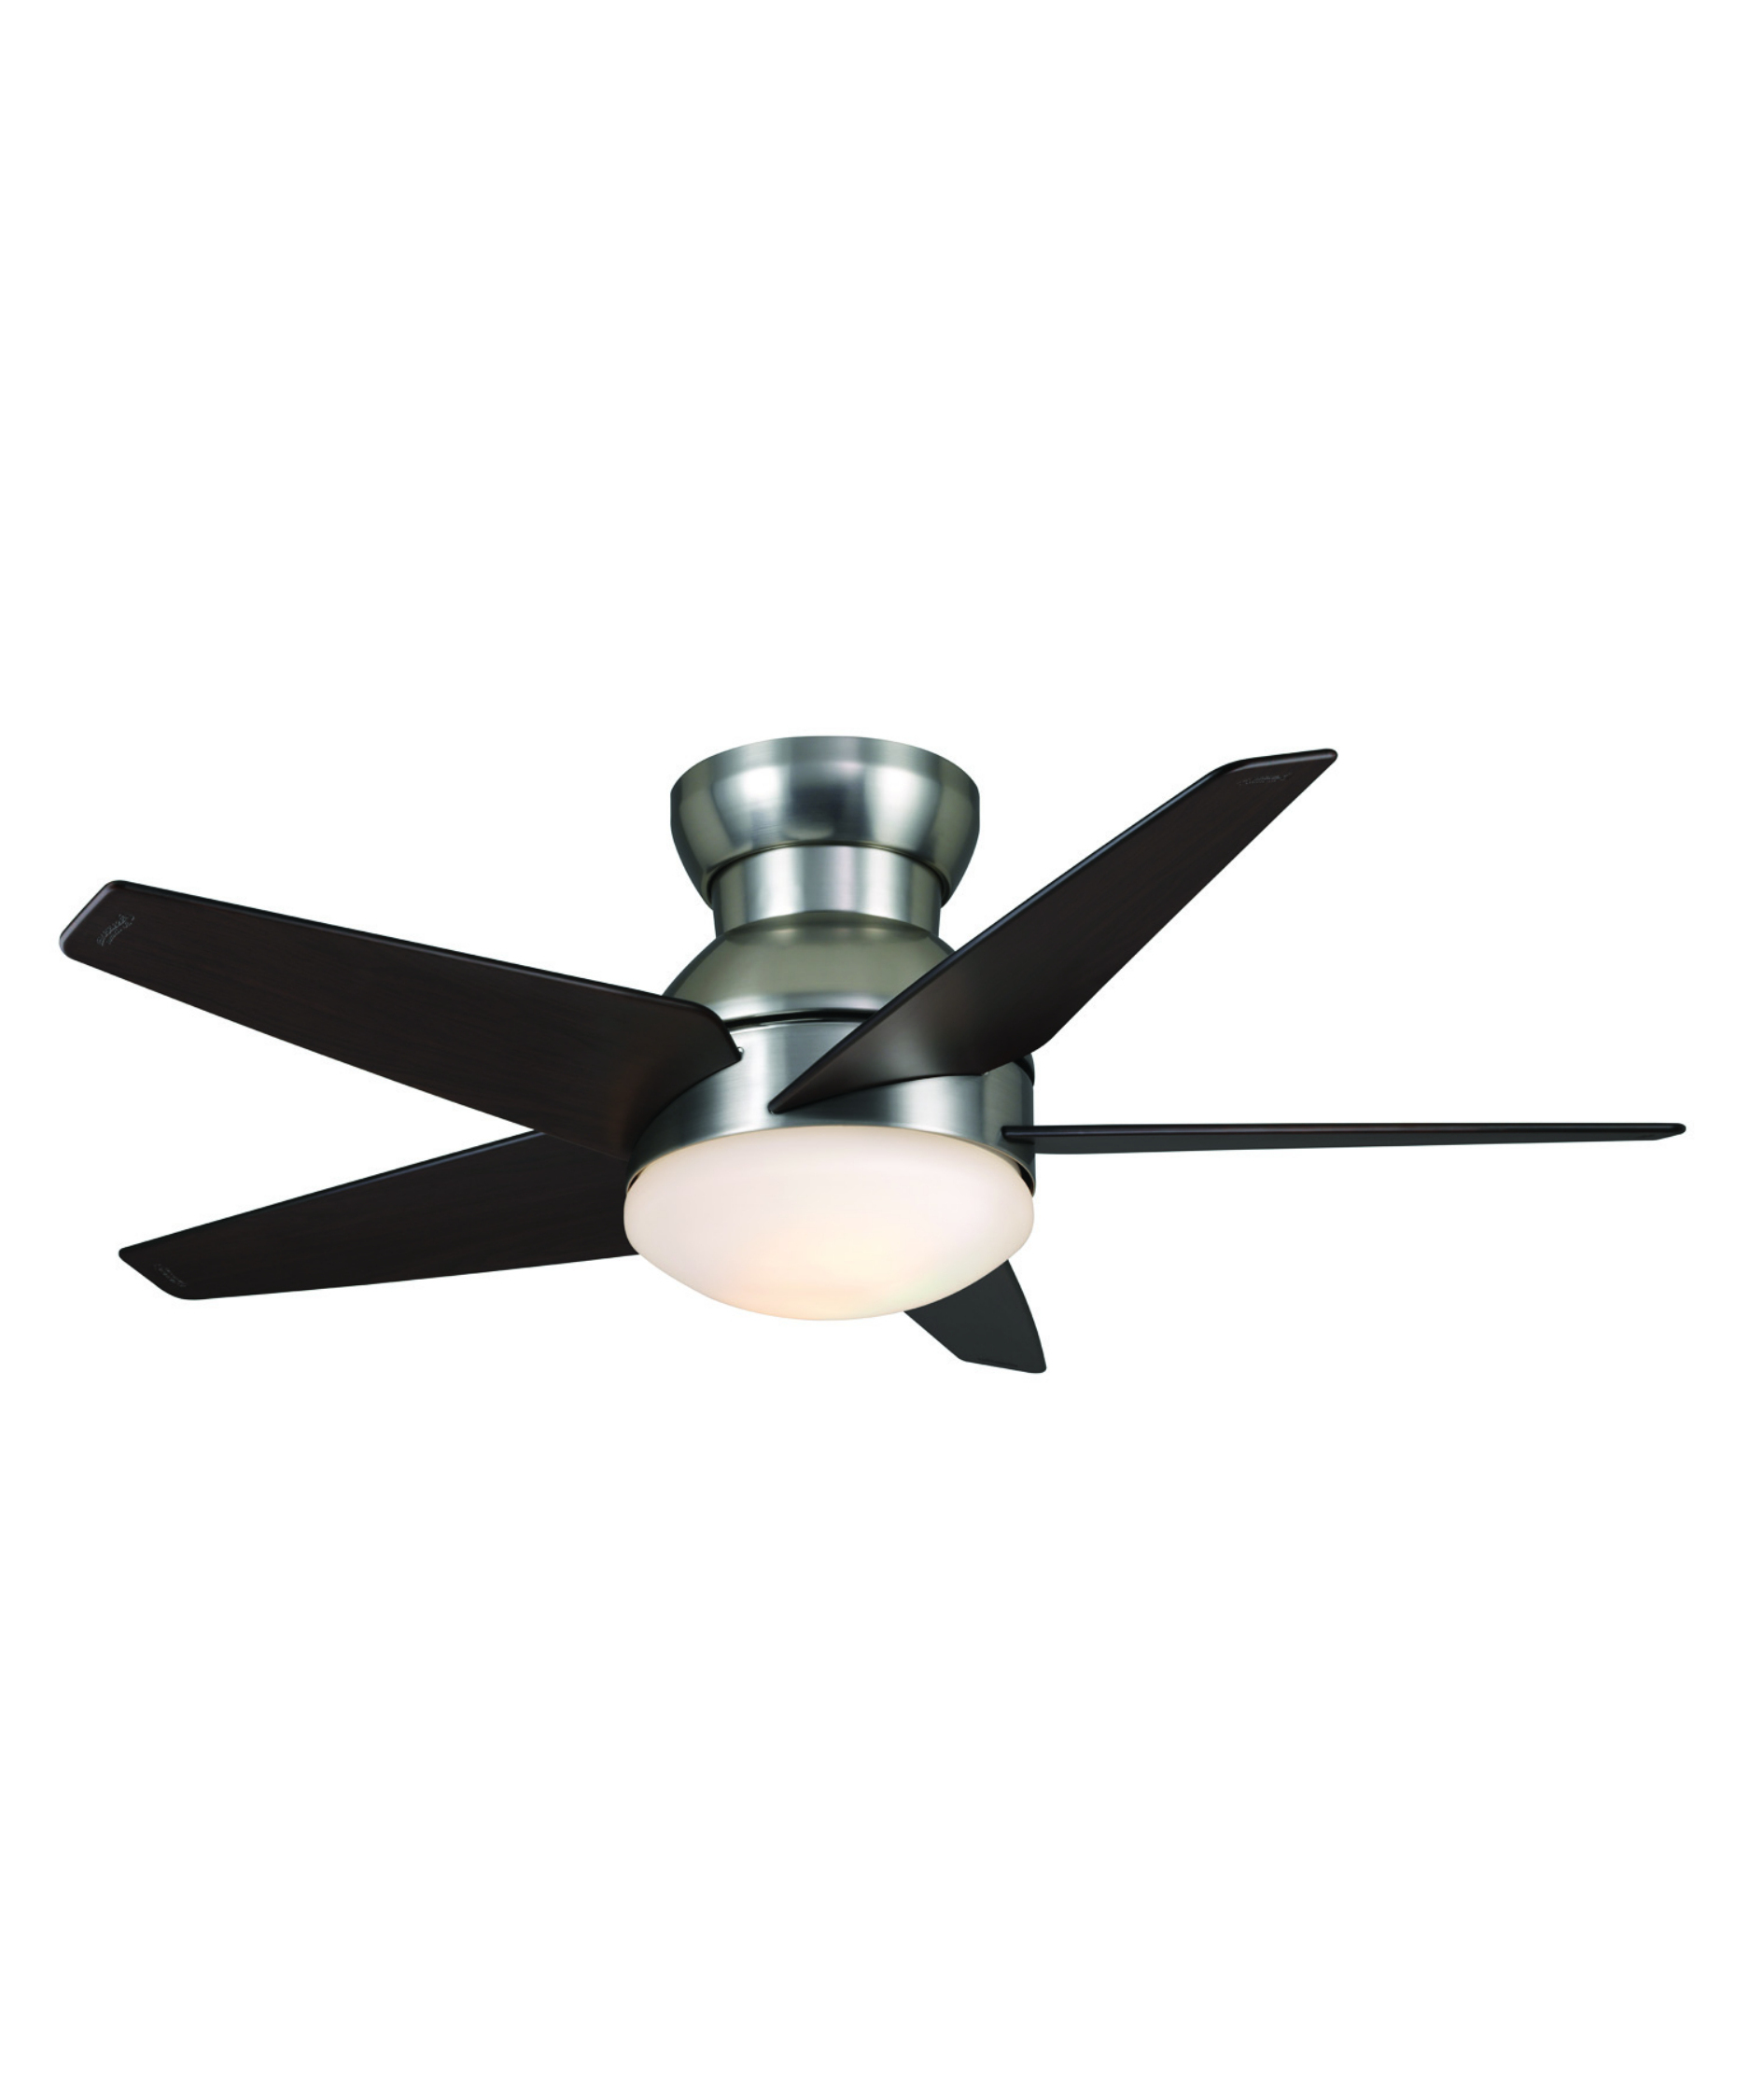 stylish Casablanca Ceiling Fans in five black blade slinger with single light for charming ceiling decor ideas